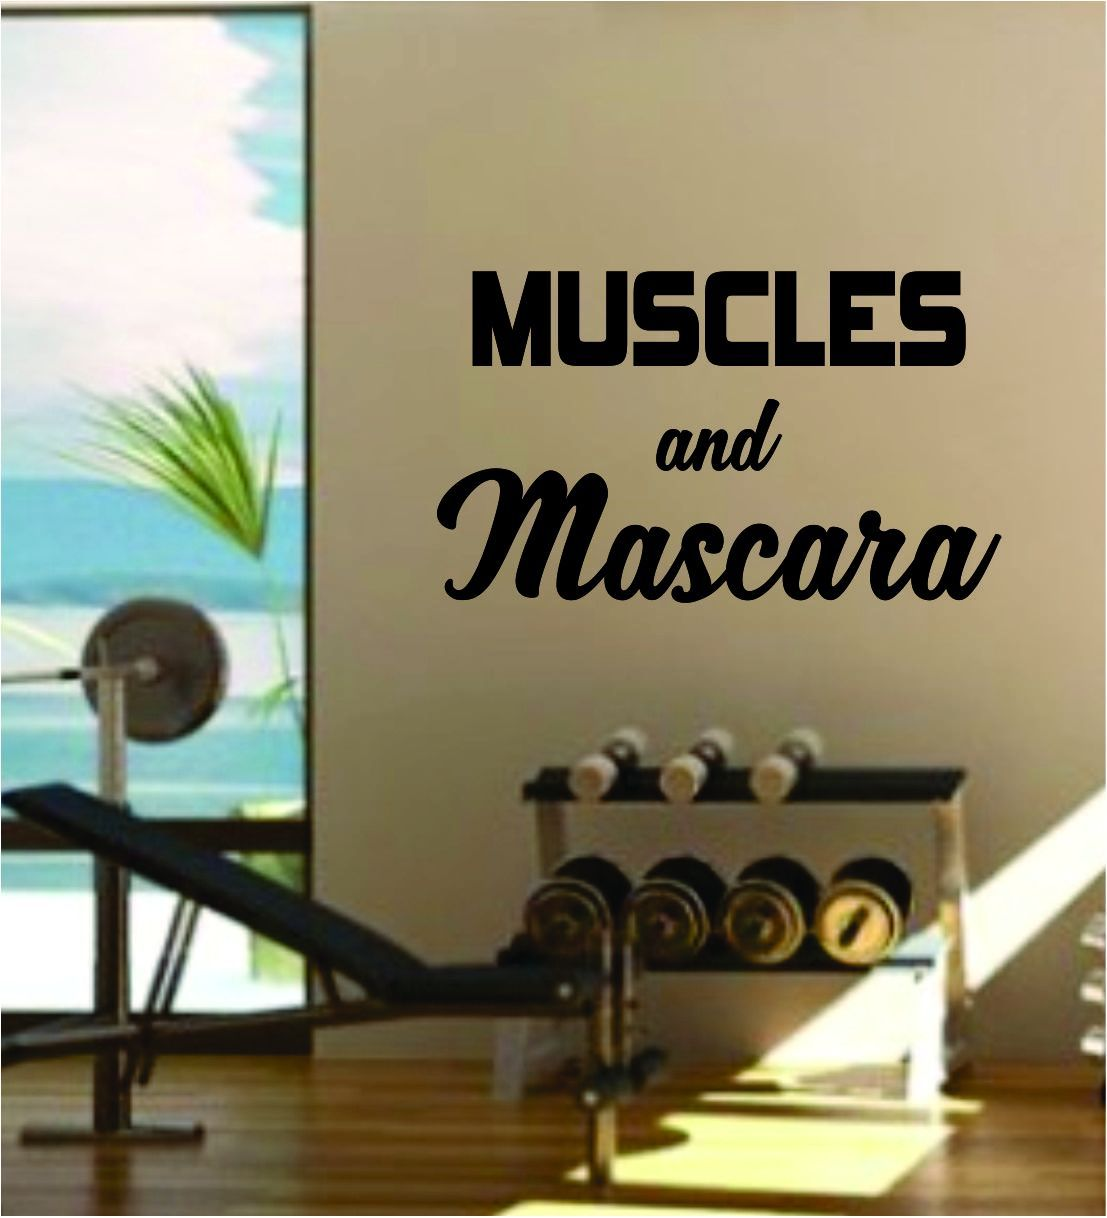 Muscles and Mascara Quote Fitness Health Work